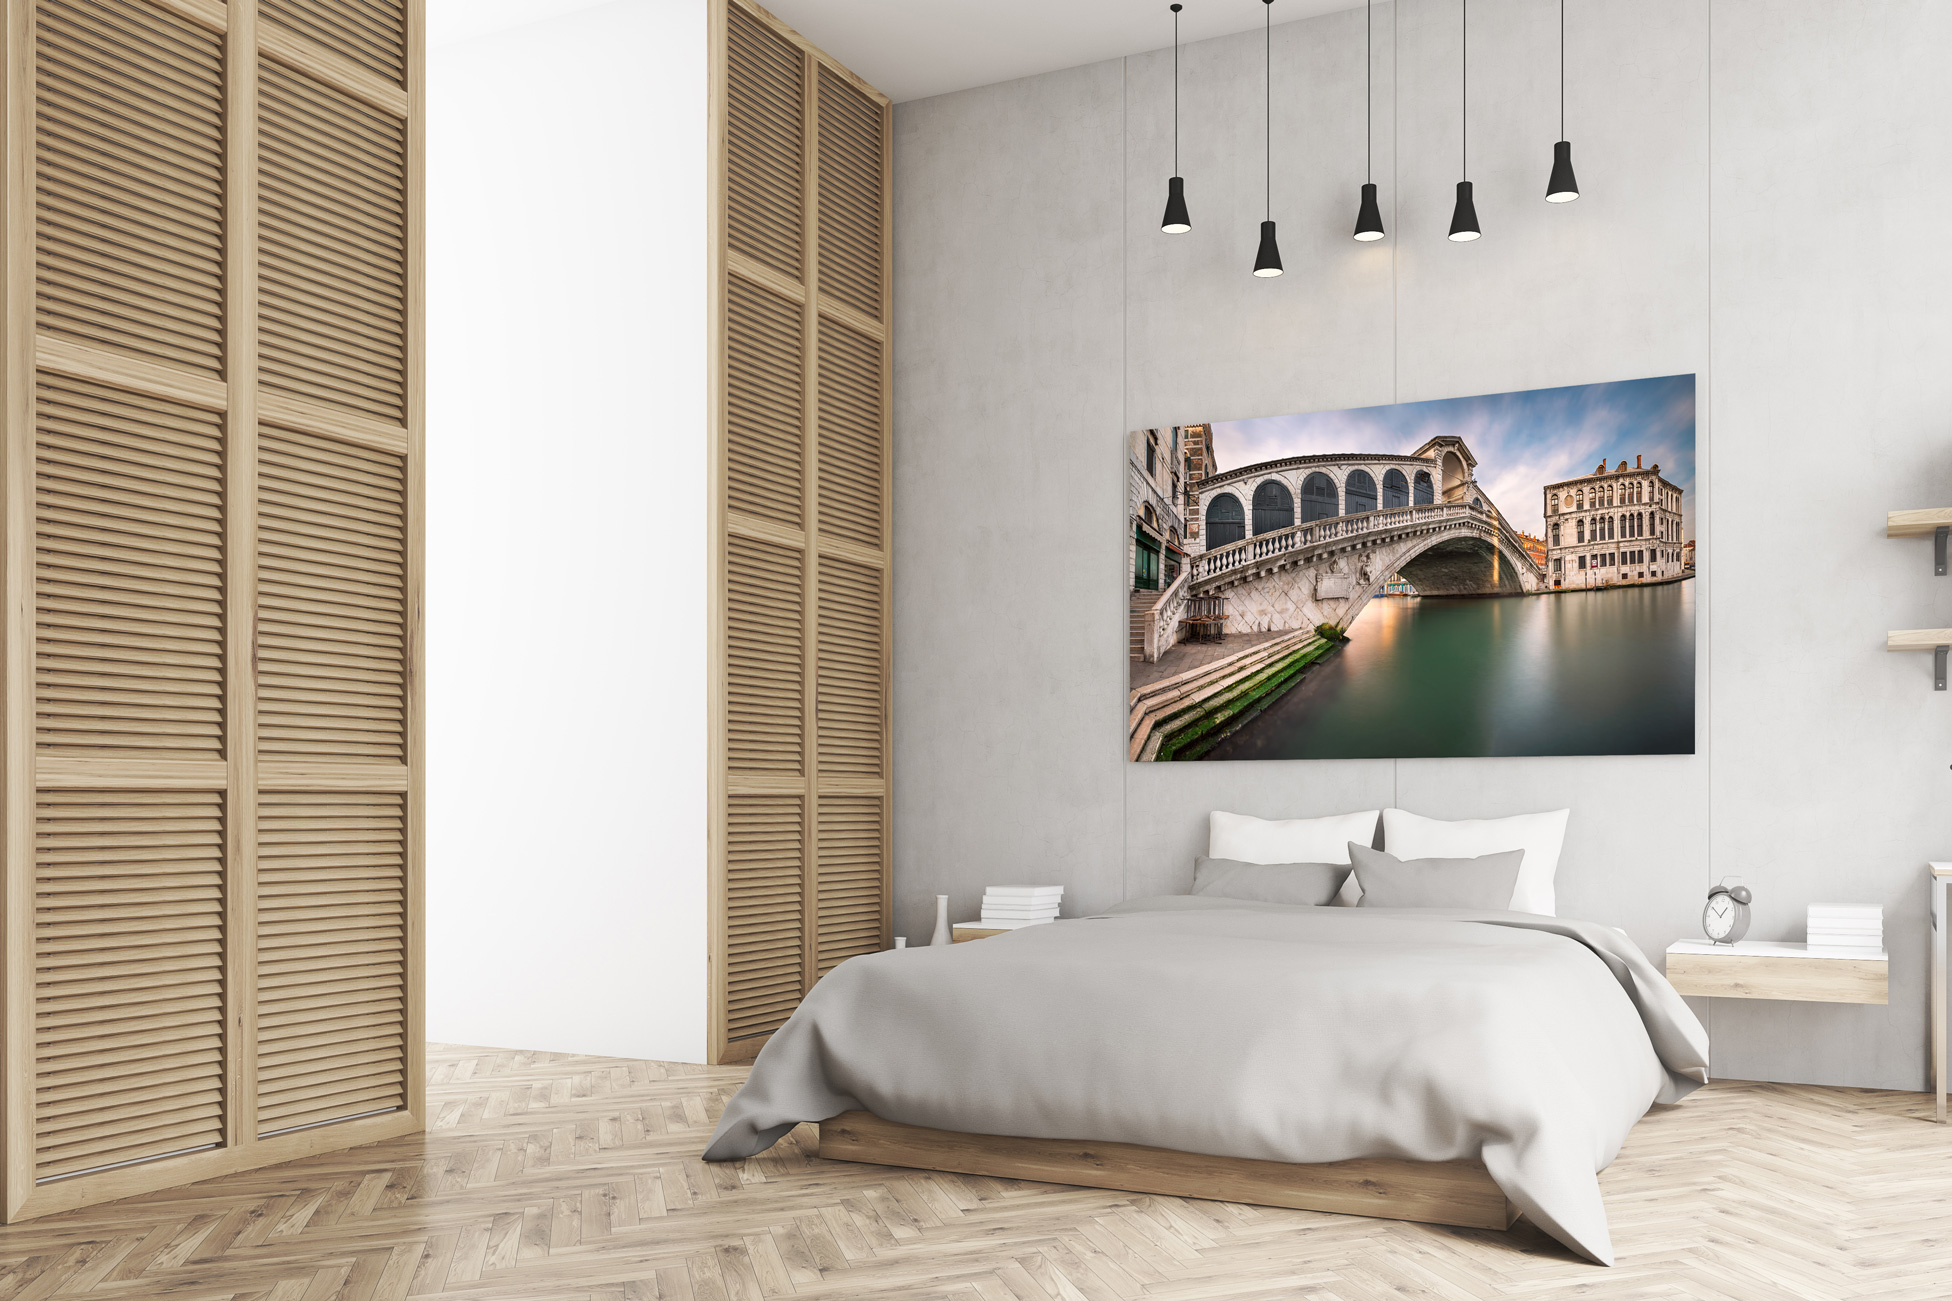 Room with Bed and Venice Fine Art Print above